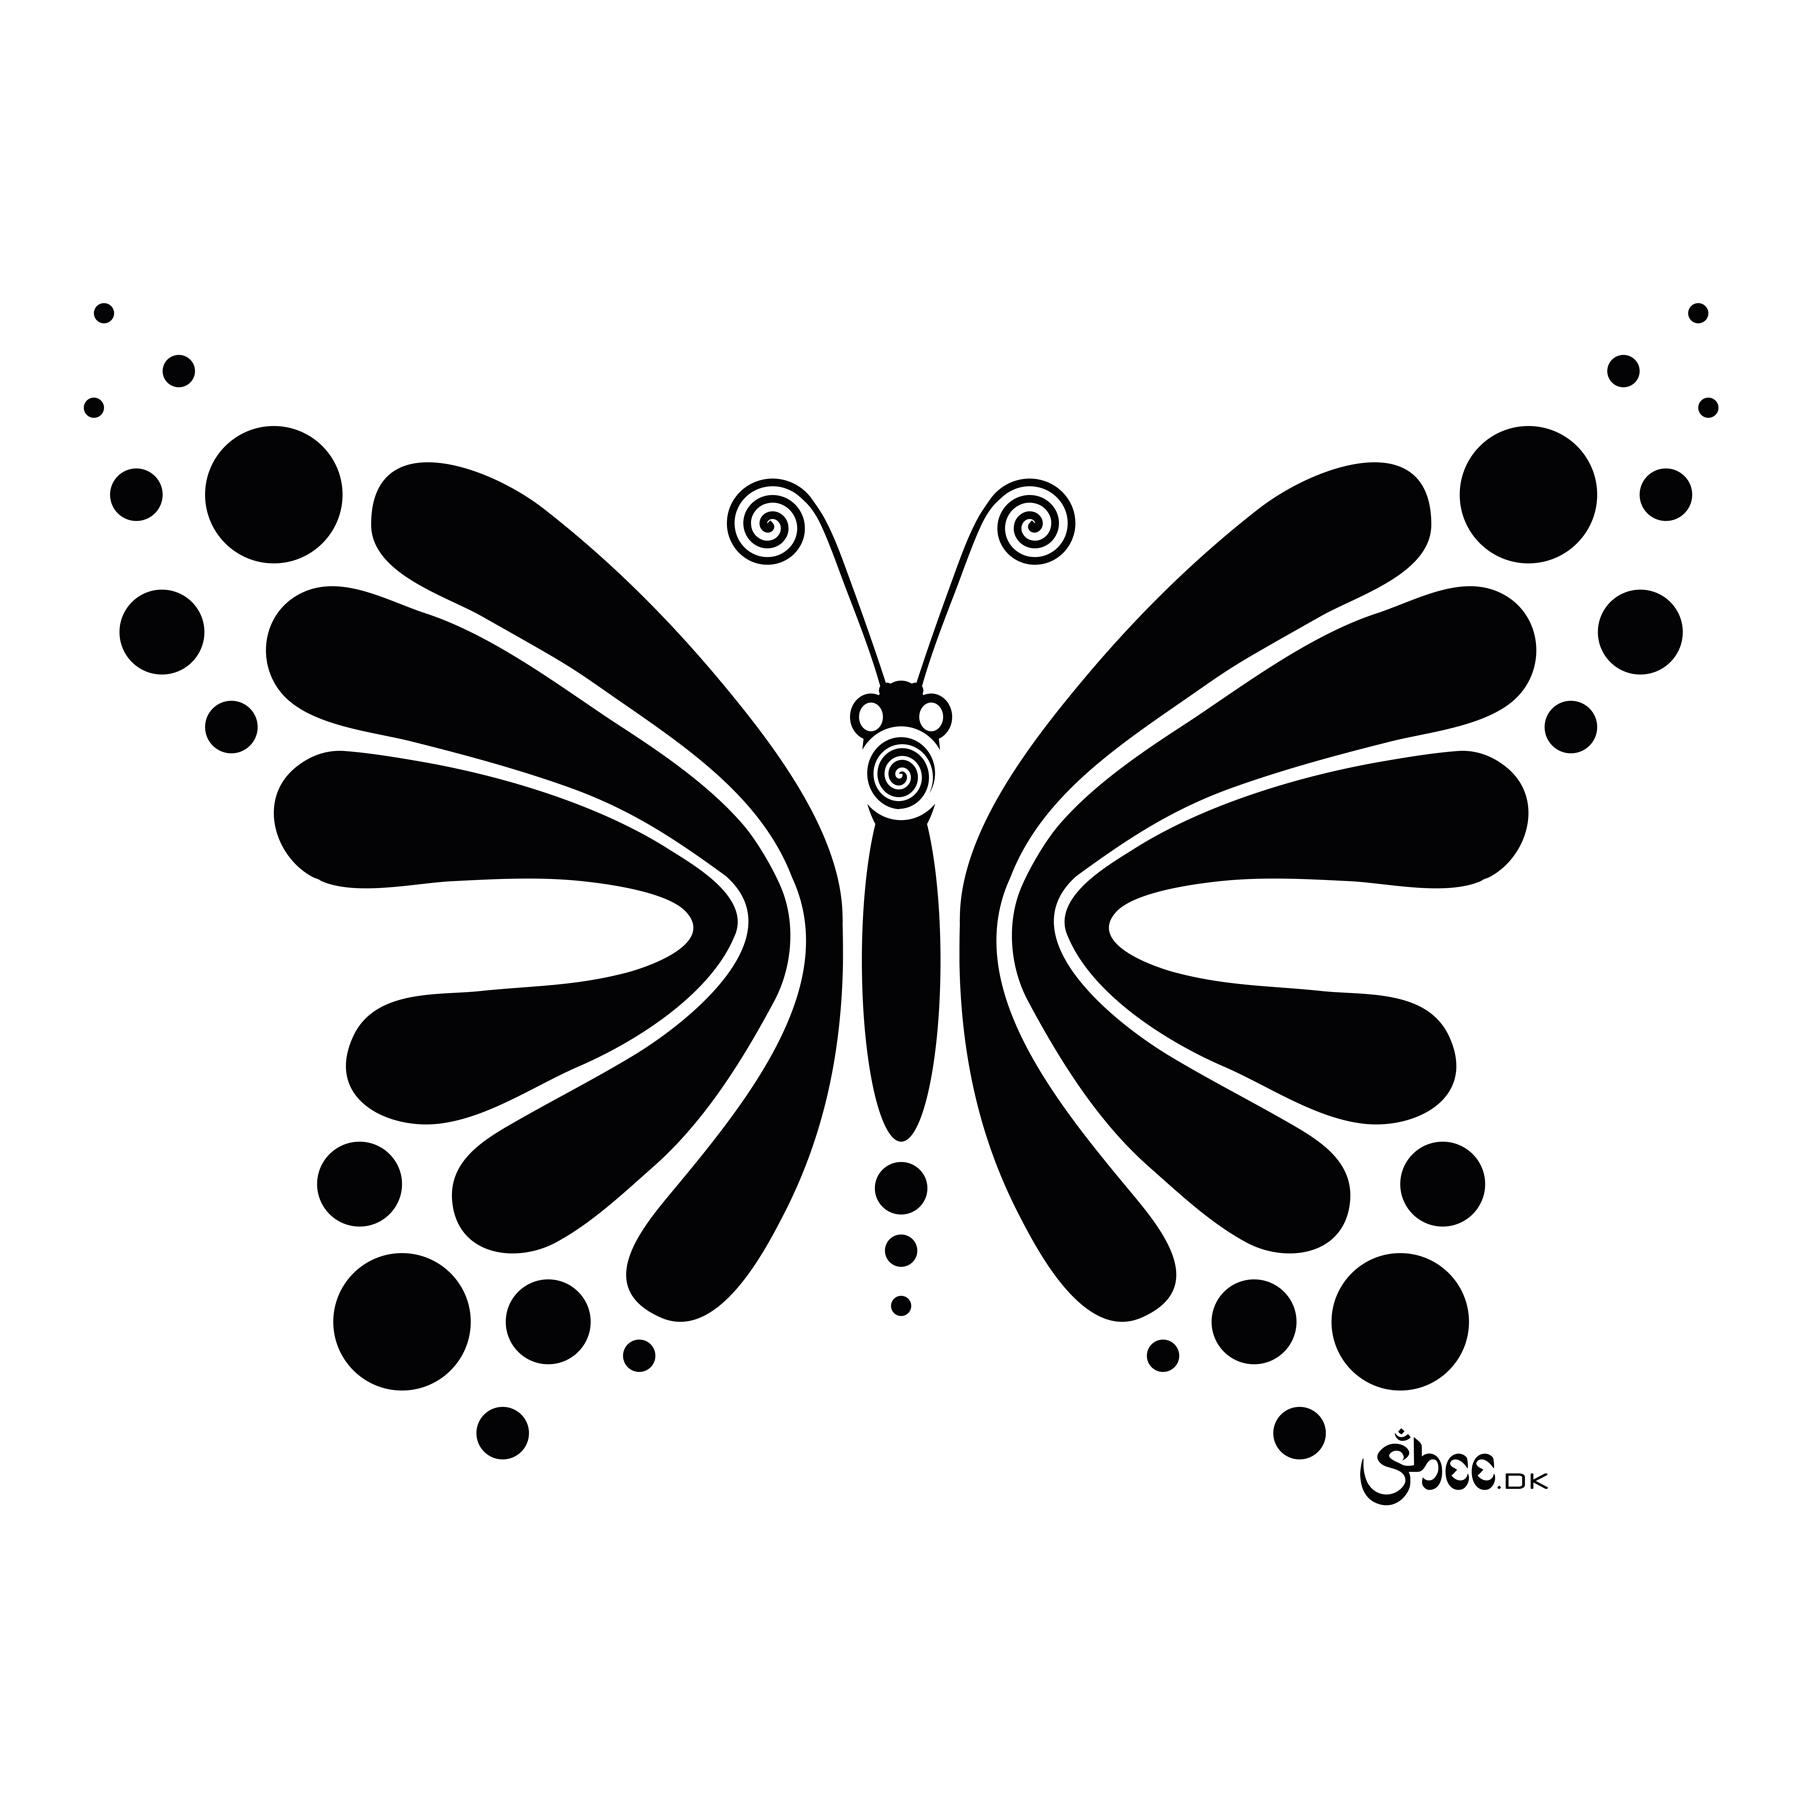 1800x1800 Sheeartworks Hypnotic Butterfly